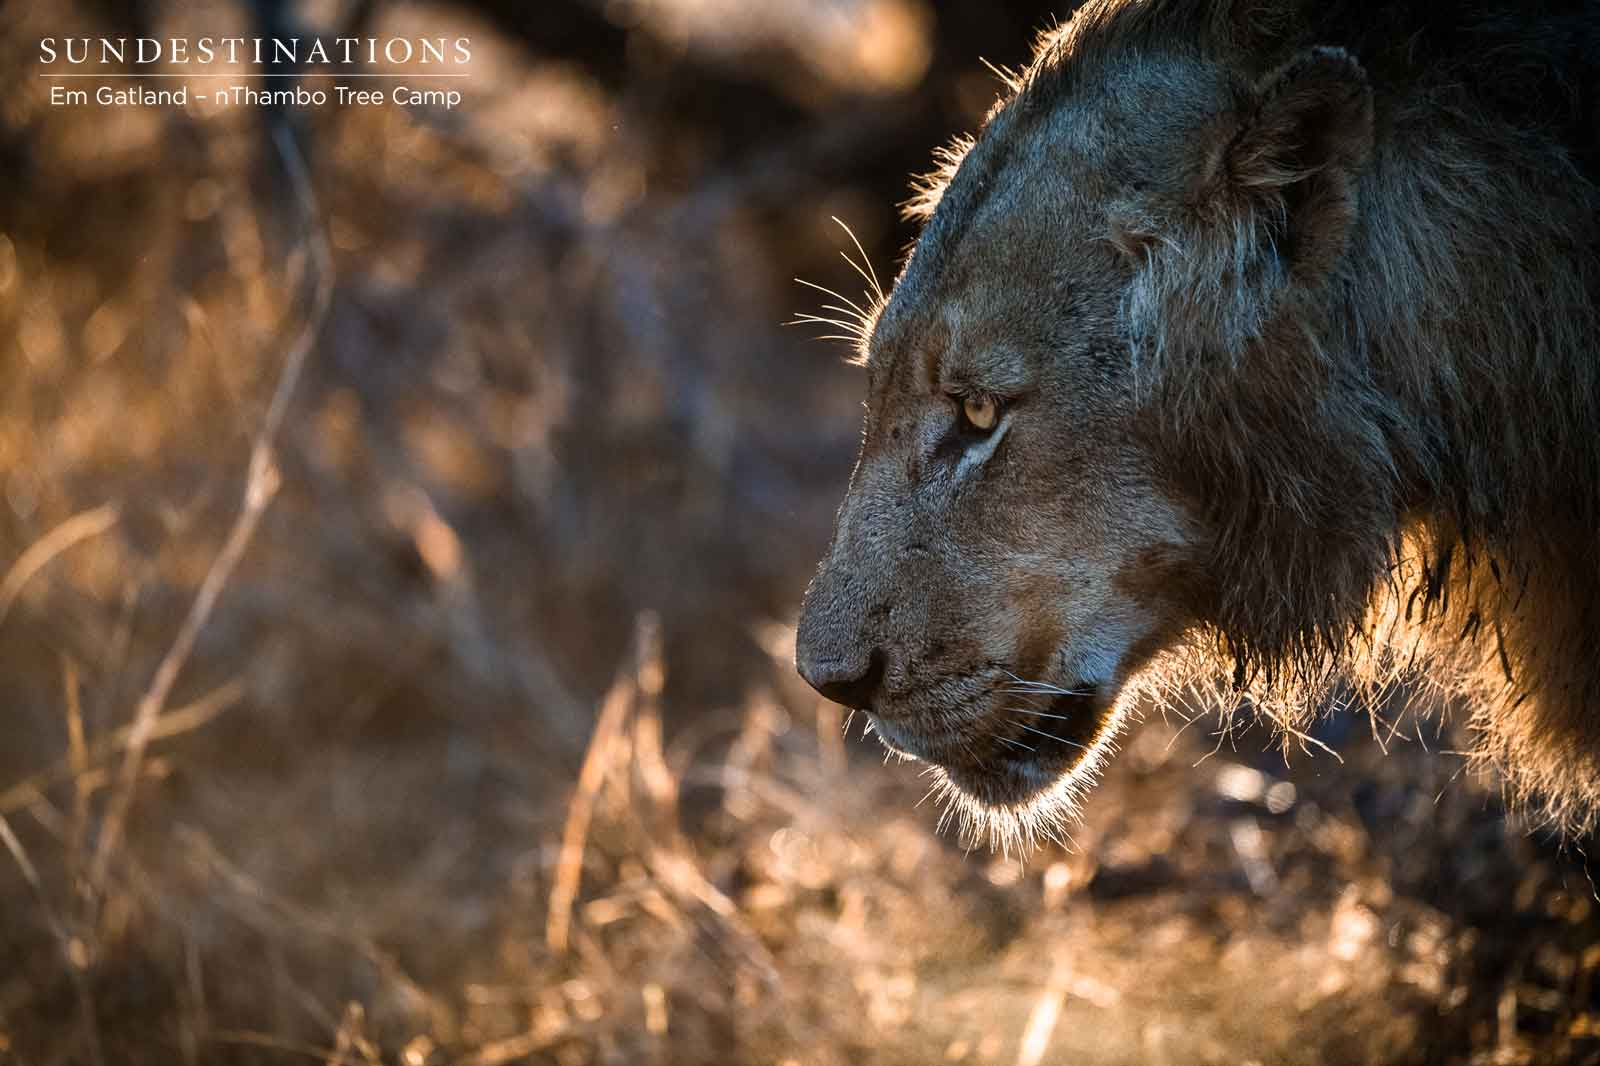 nThambo Lions Face